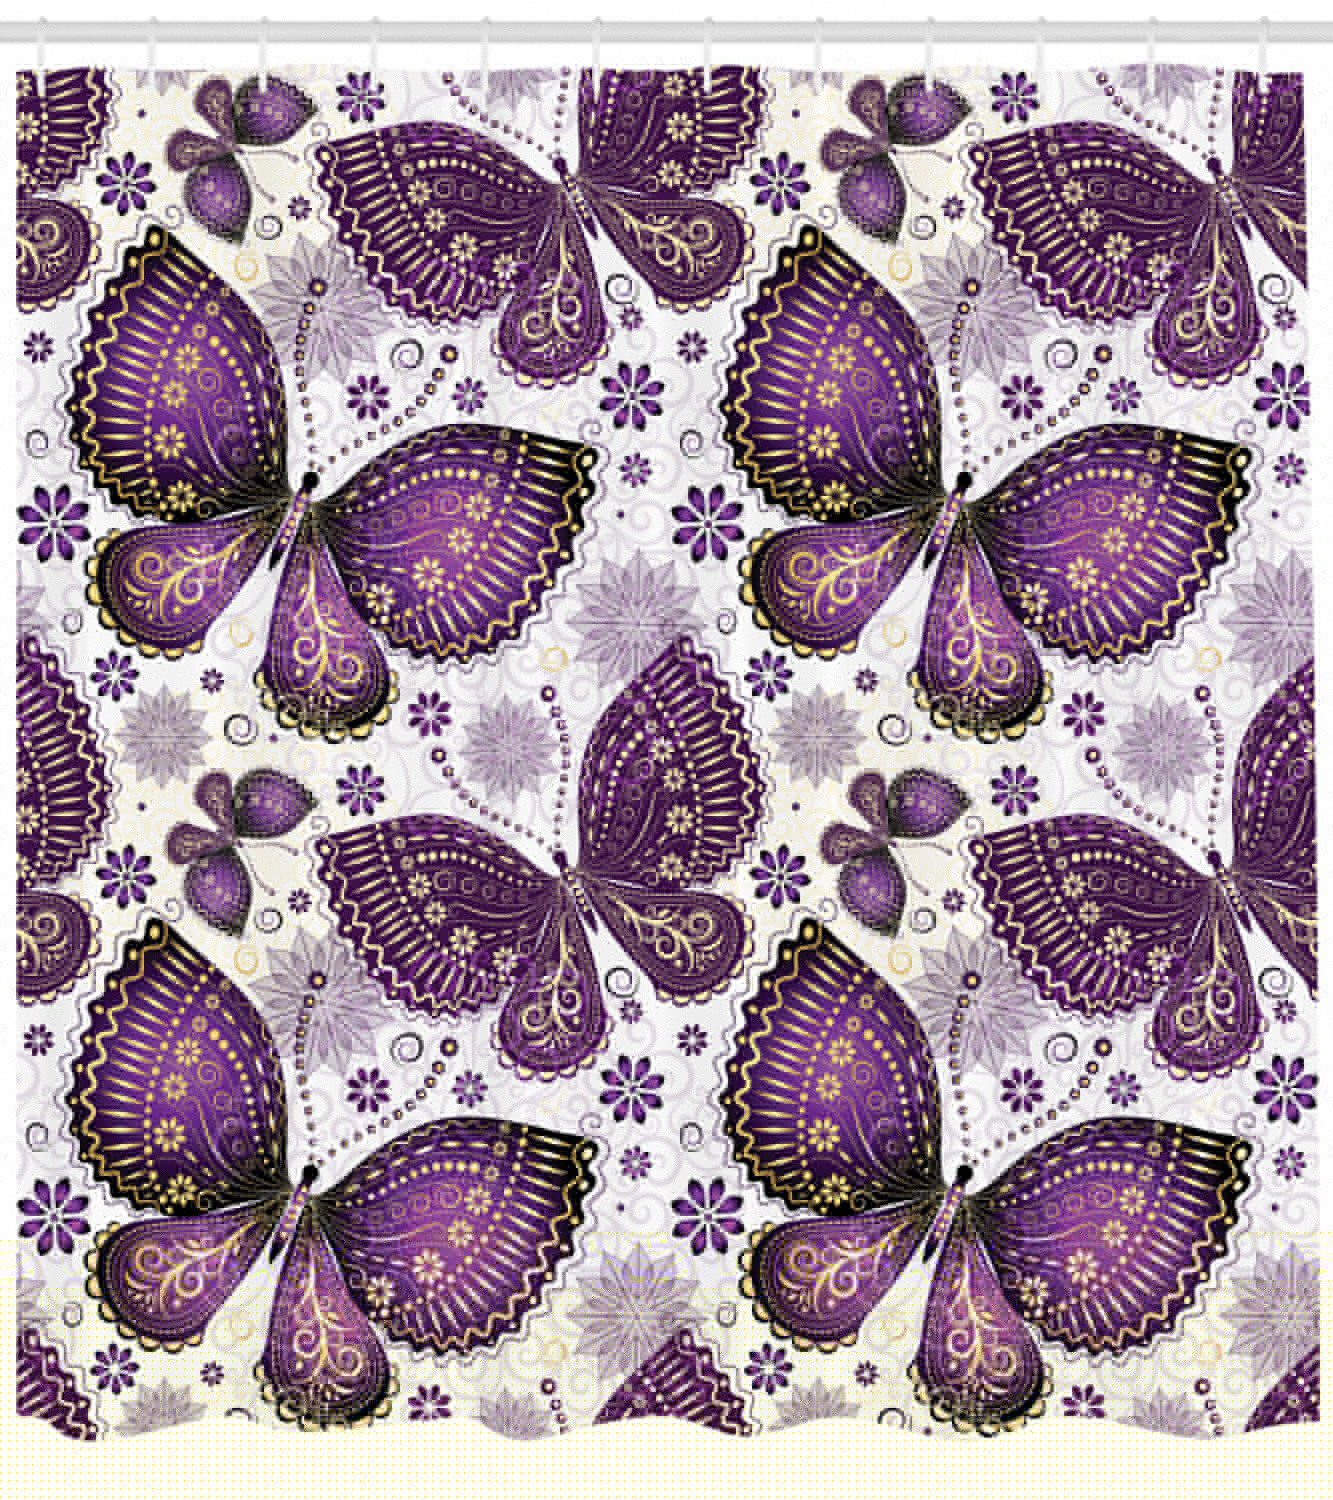 Natural Shower Curtain Ethnic Asian Butterflies With Paisley Motif On Wings Flowers Art Print Fabric Bathroom Set With Hooks Plum Purple Lilac